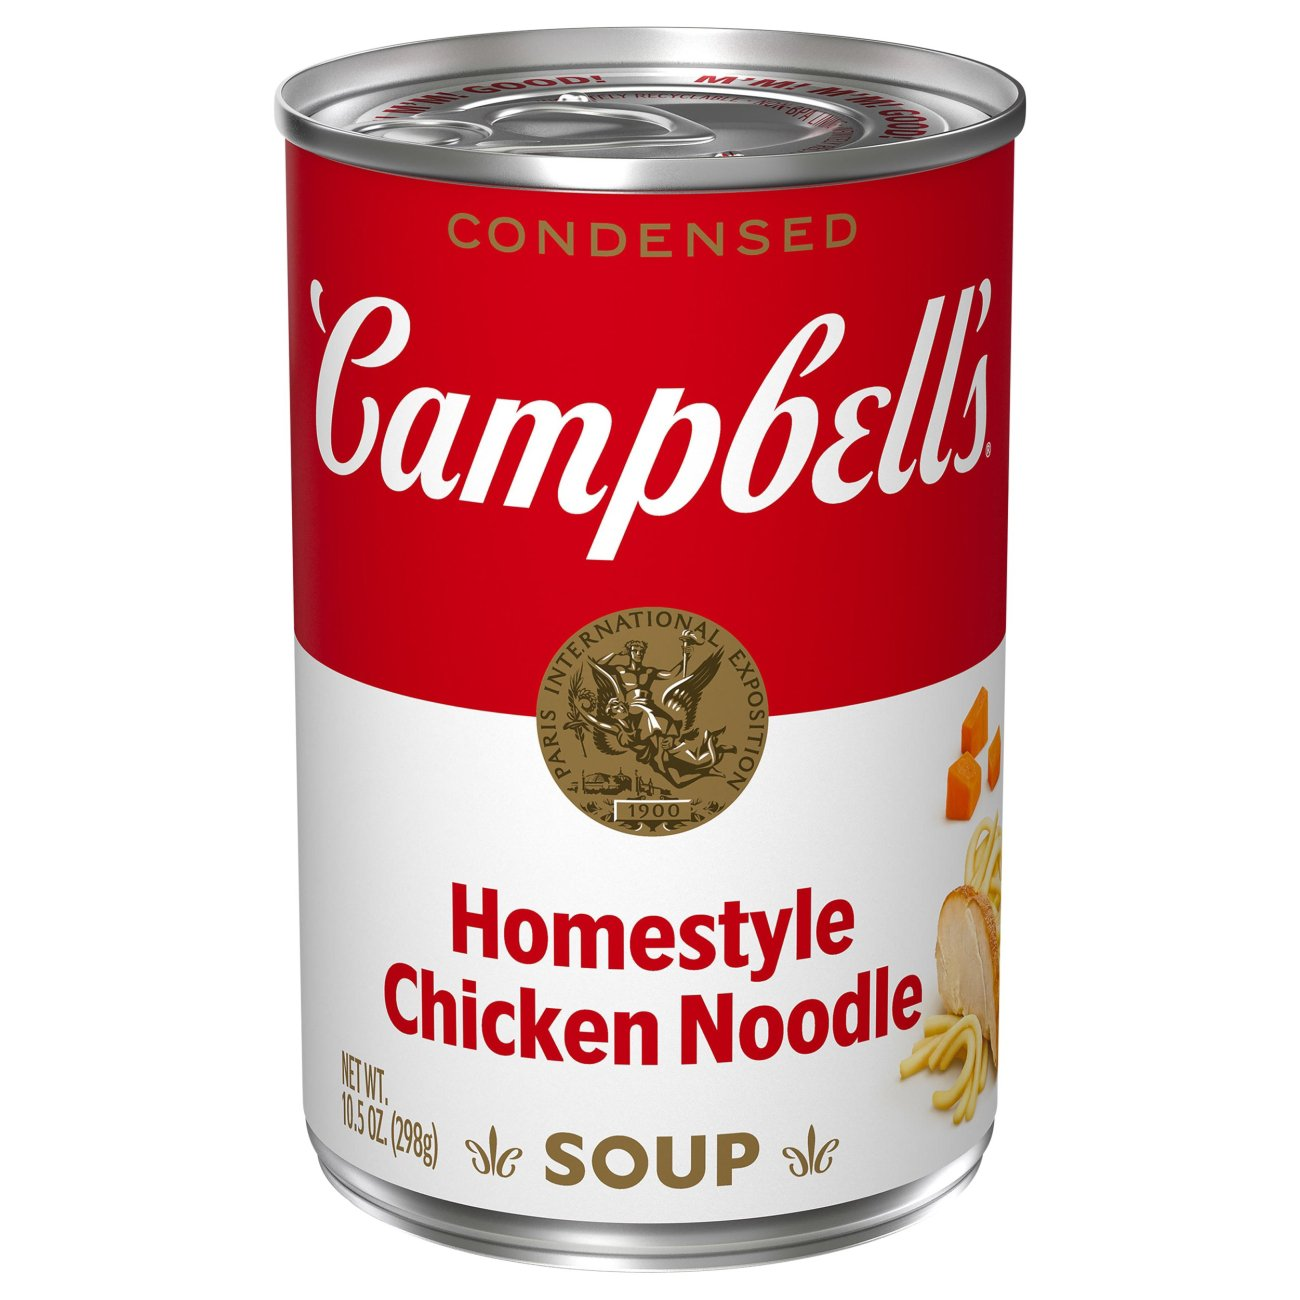 campbell's condensed homestyle chicken noodle soup - shop